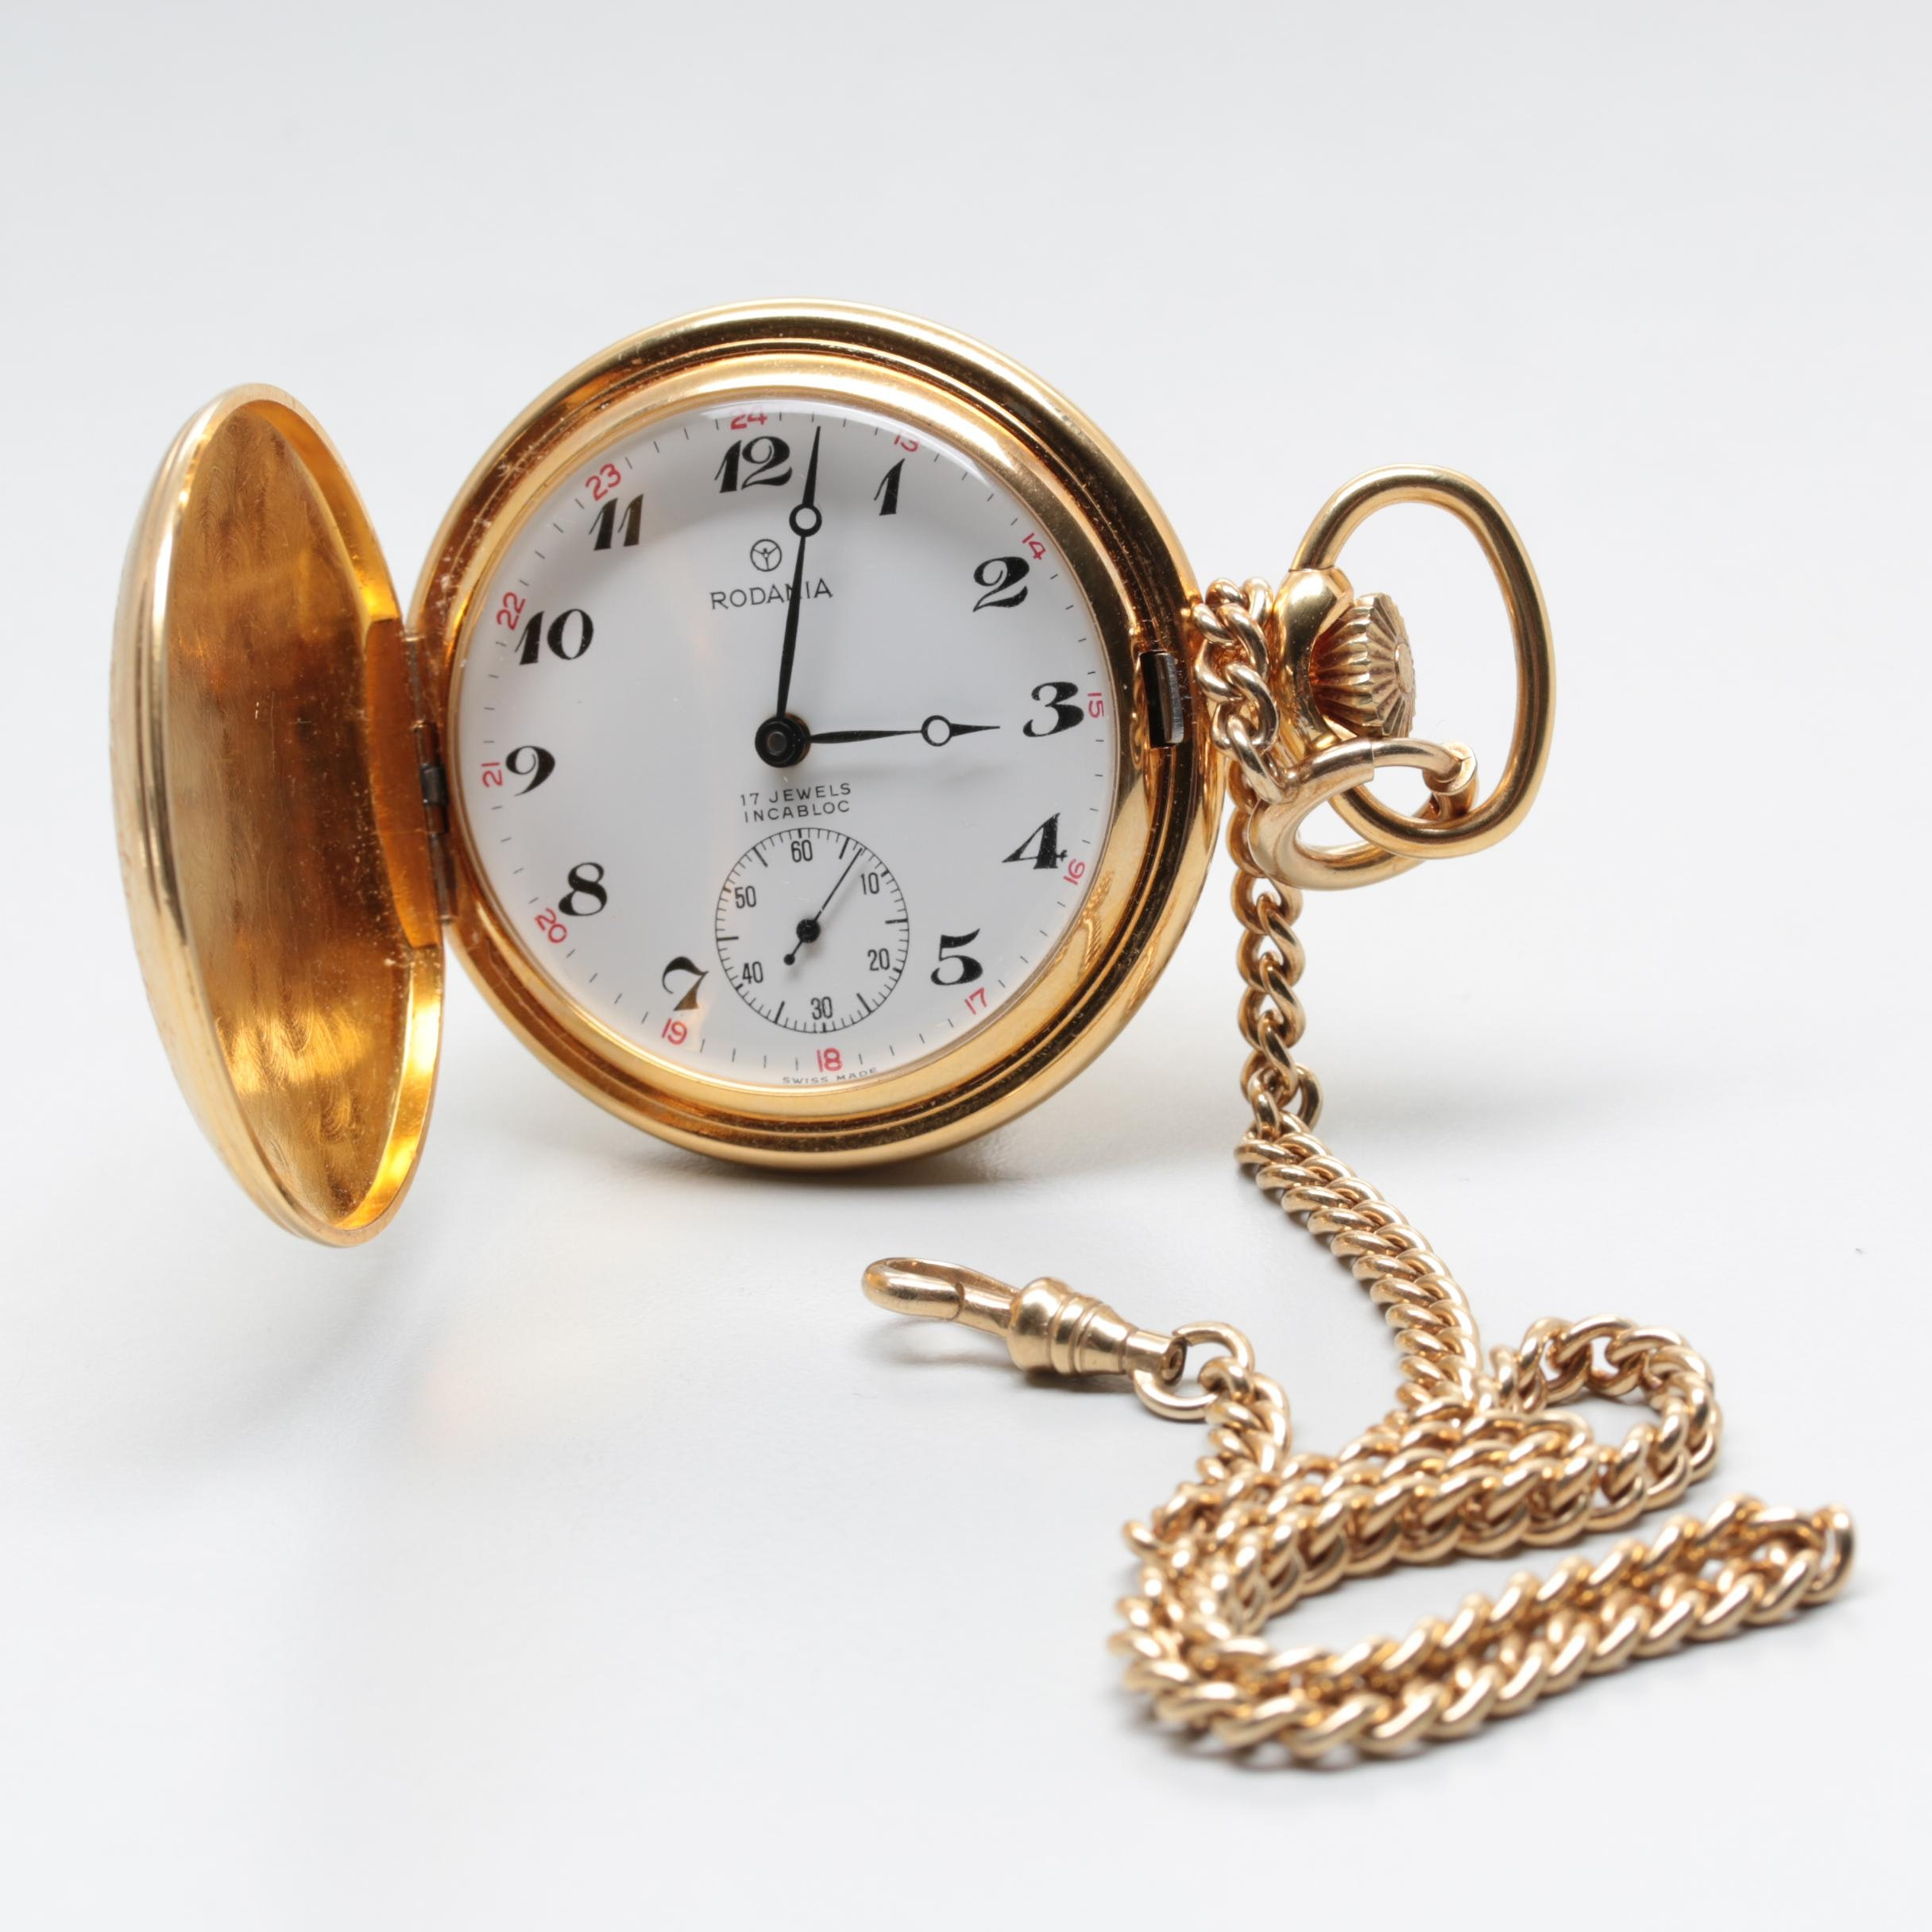 Rodania Swiss Gold Plated Hunting Case Pocket Watch